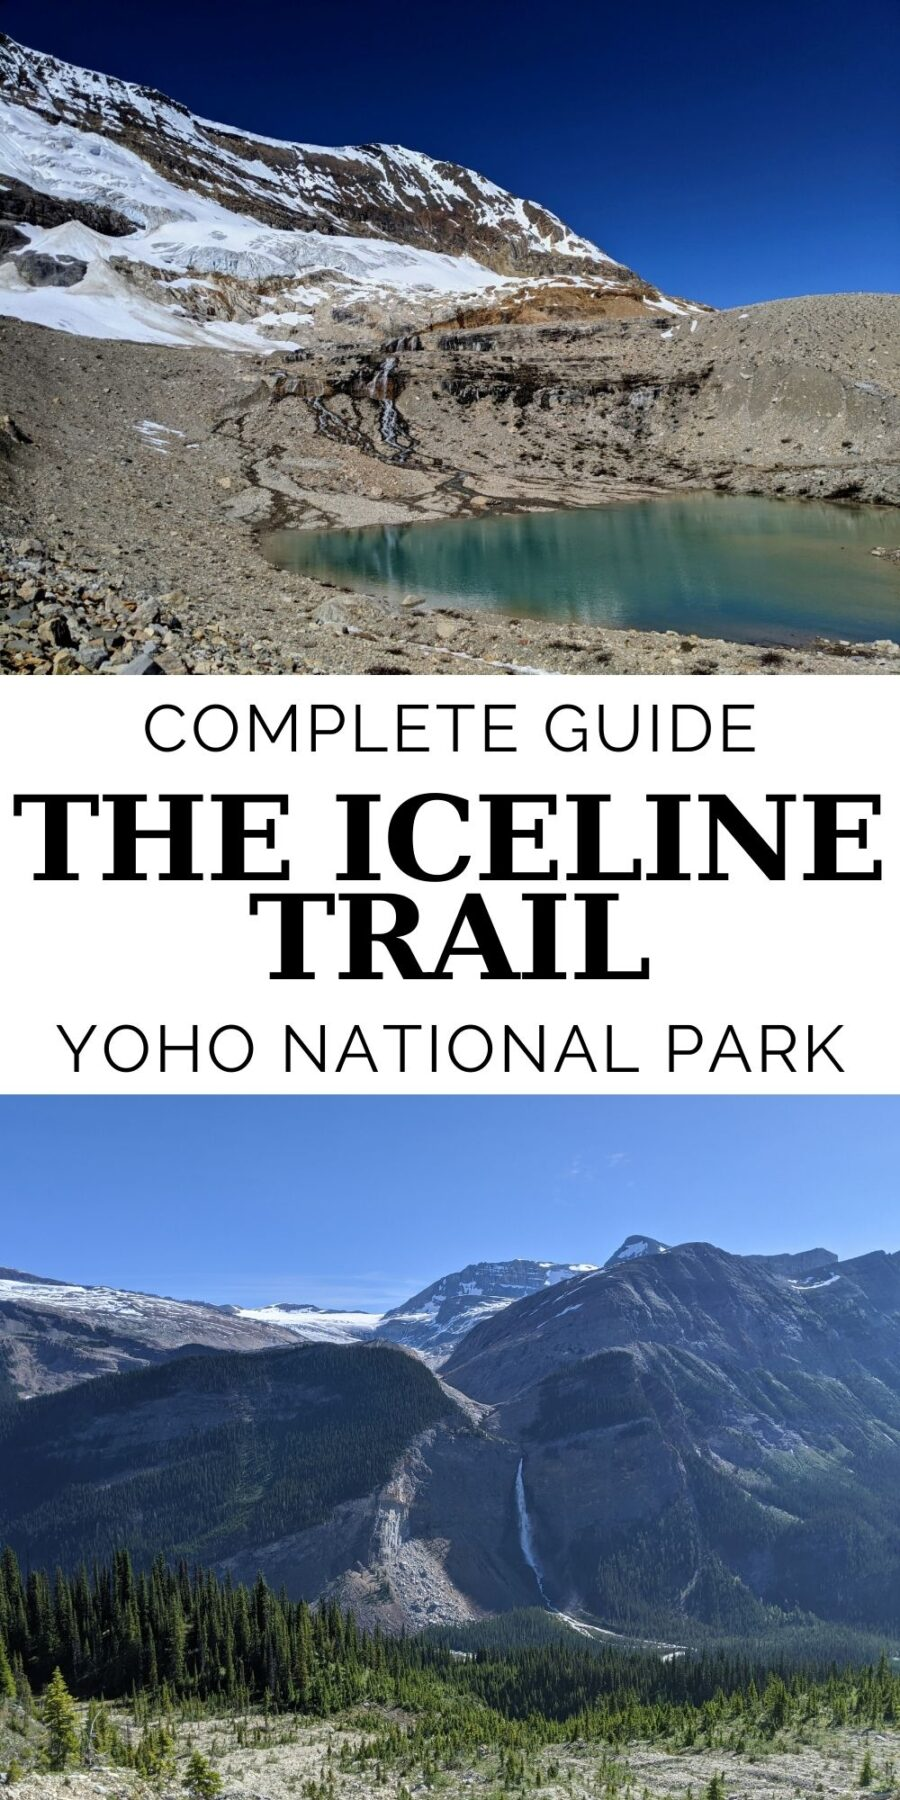 There's no question that the Iceline Trail is one of the best day hikes in British Columbia, Canada - the 20km loop route features glaciers, waterfalls, alpine tarns, endless mountain peaks and more! Click here to learn all about this incredible hike and plan your own trip on the Iceline today. offtracktravel.ca